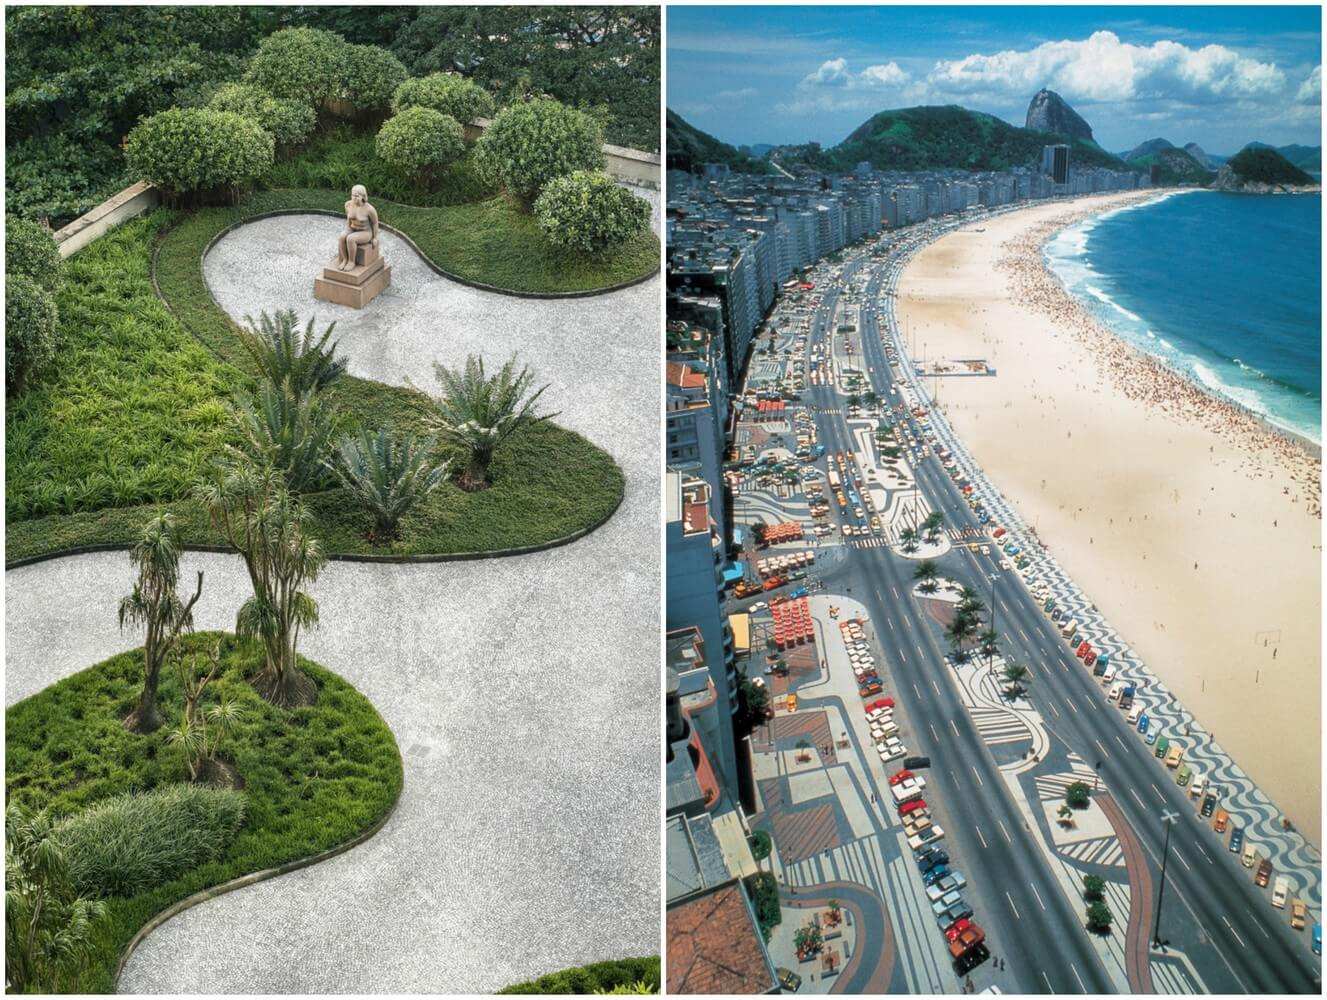 2_Roberto Burle Marx, Copacabana Beach and the Ministry of Health & Education building, Rio De Janiro